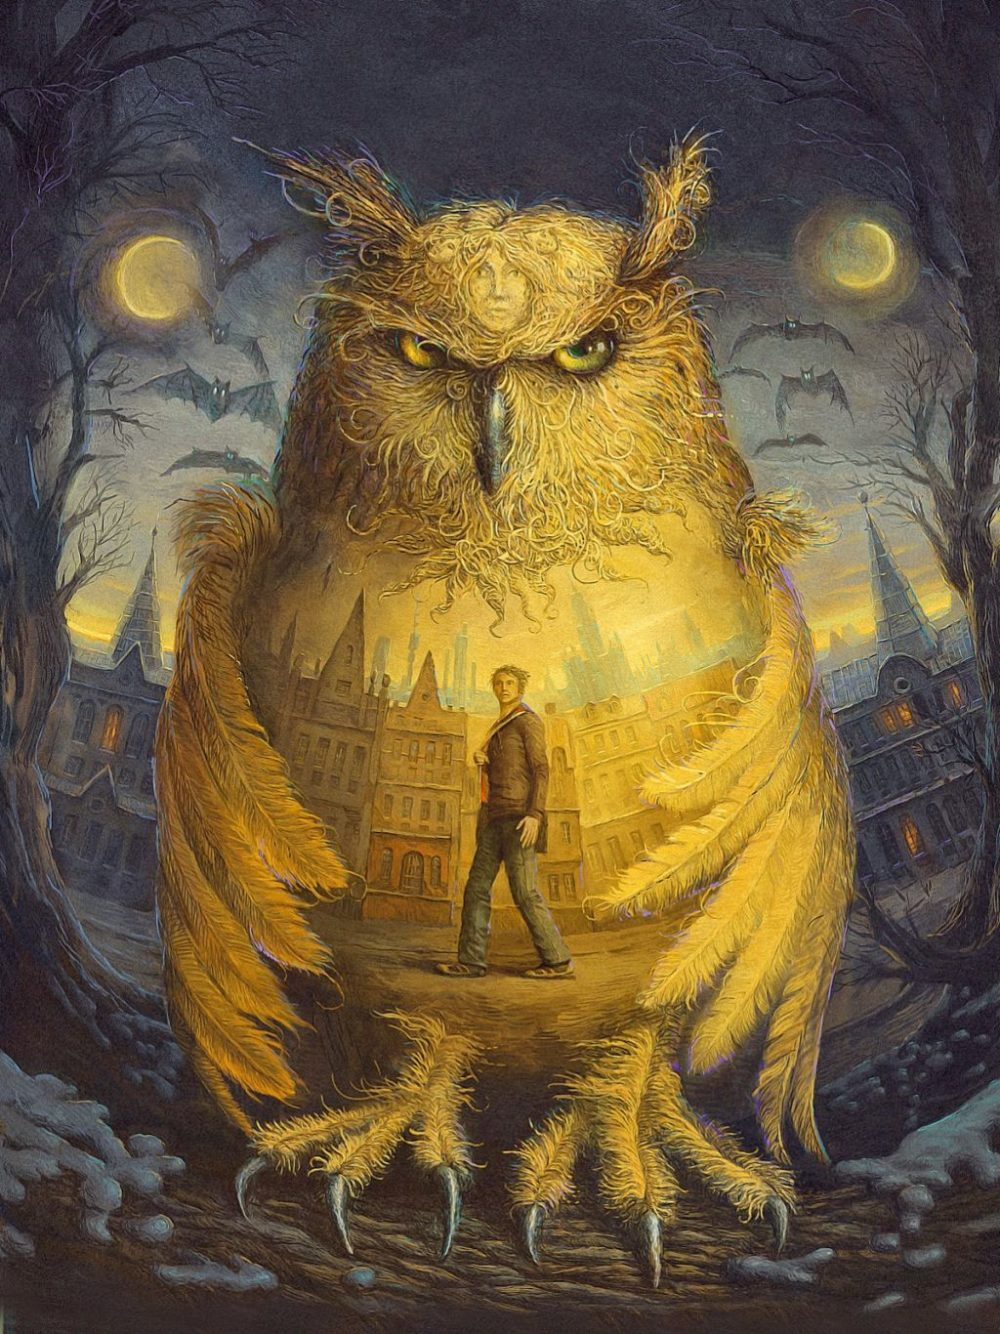 Surreal And Imaginative Book Illustrations By Andrew Ferez 10